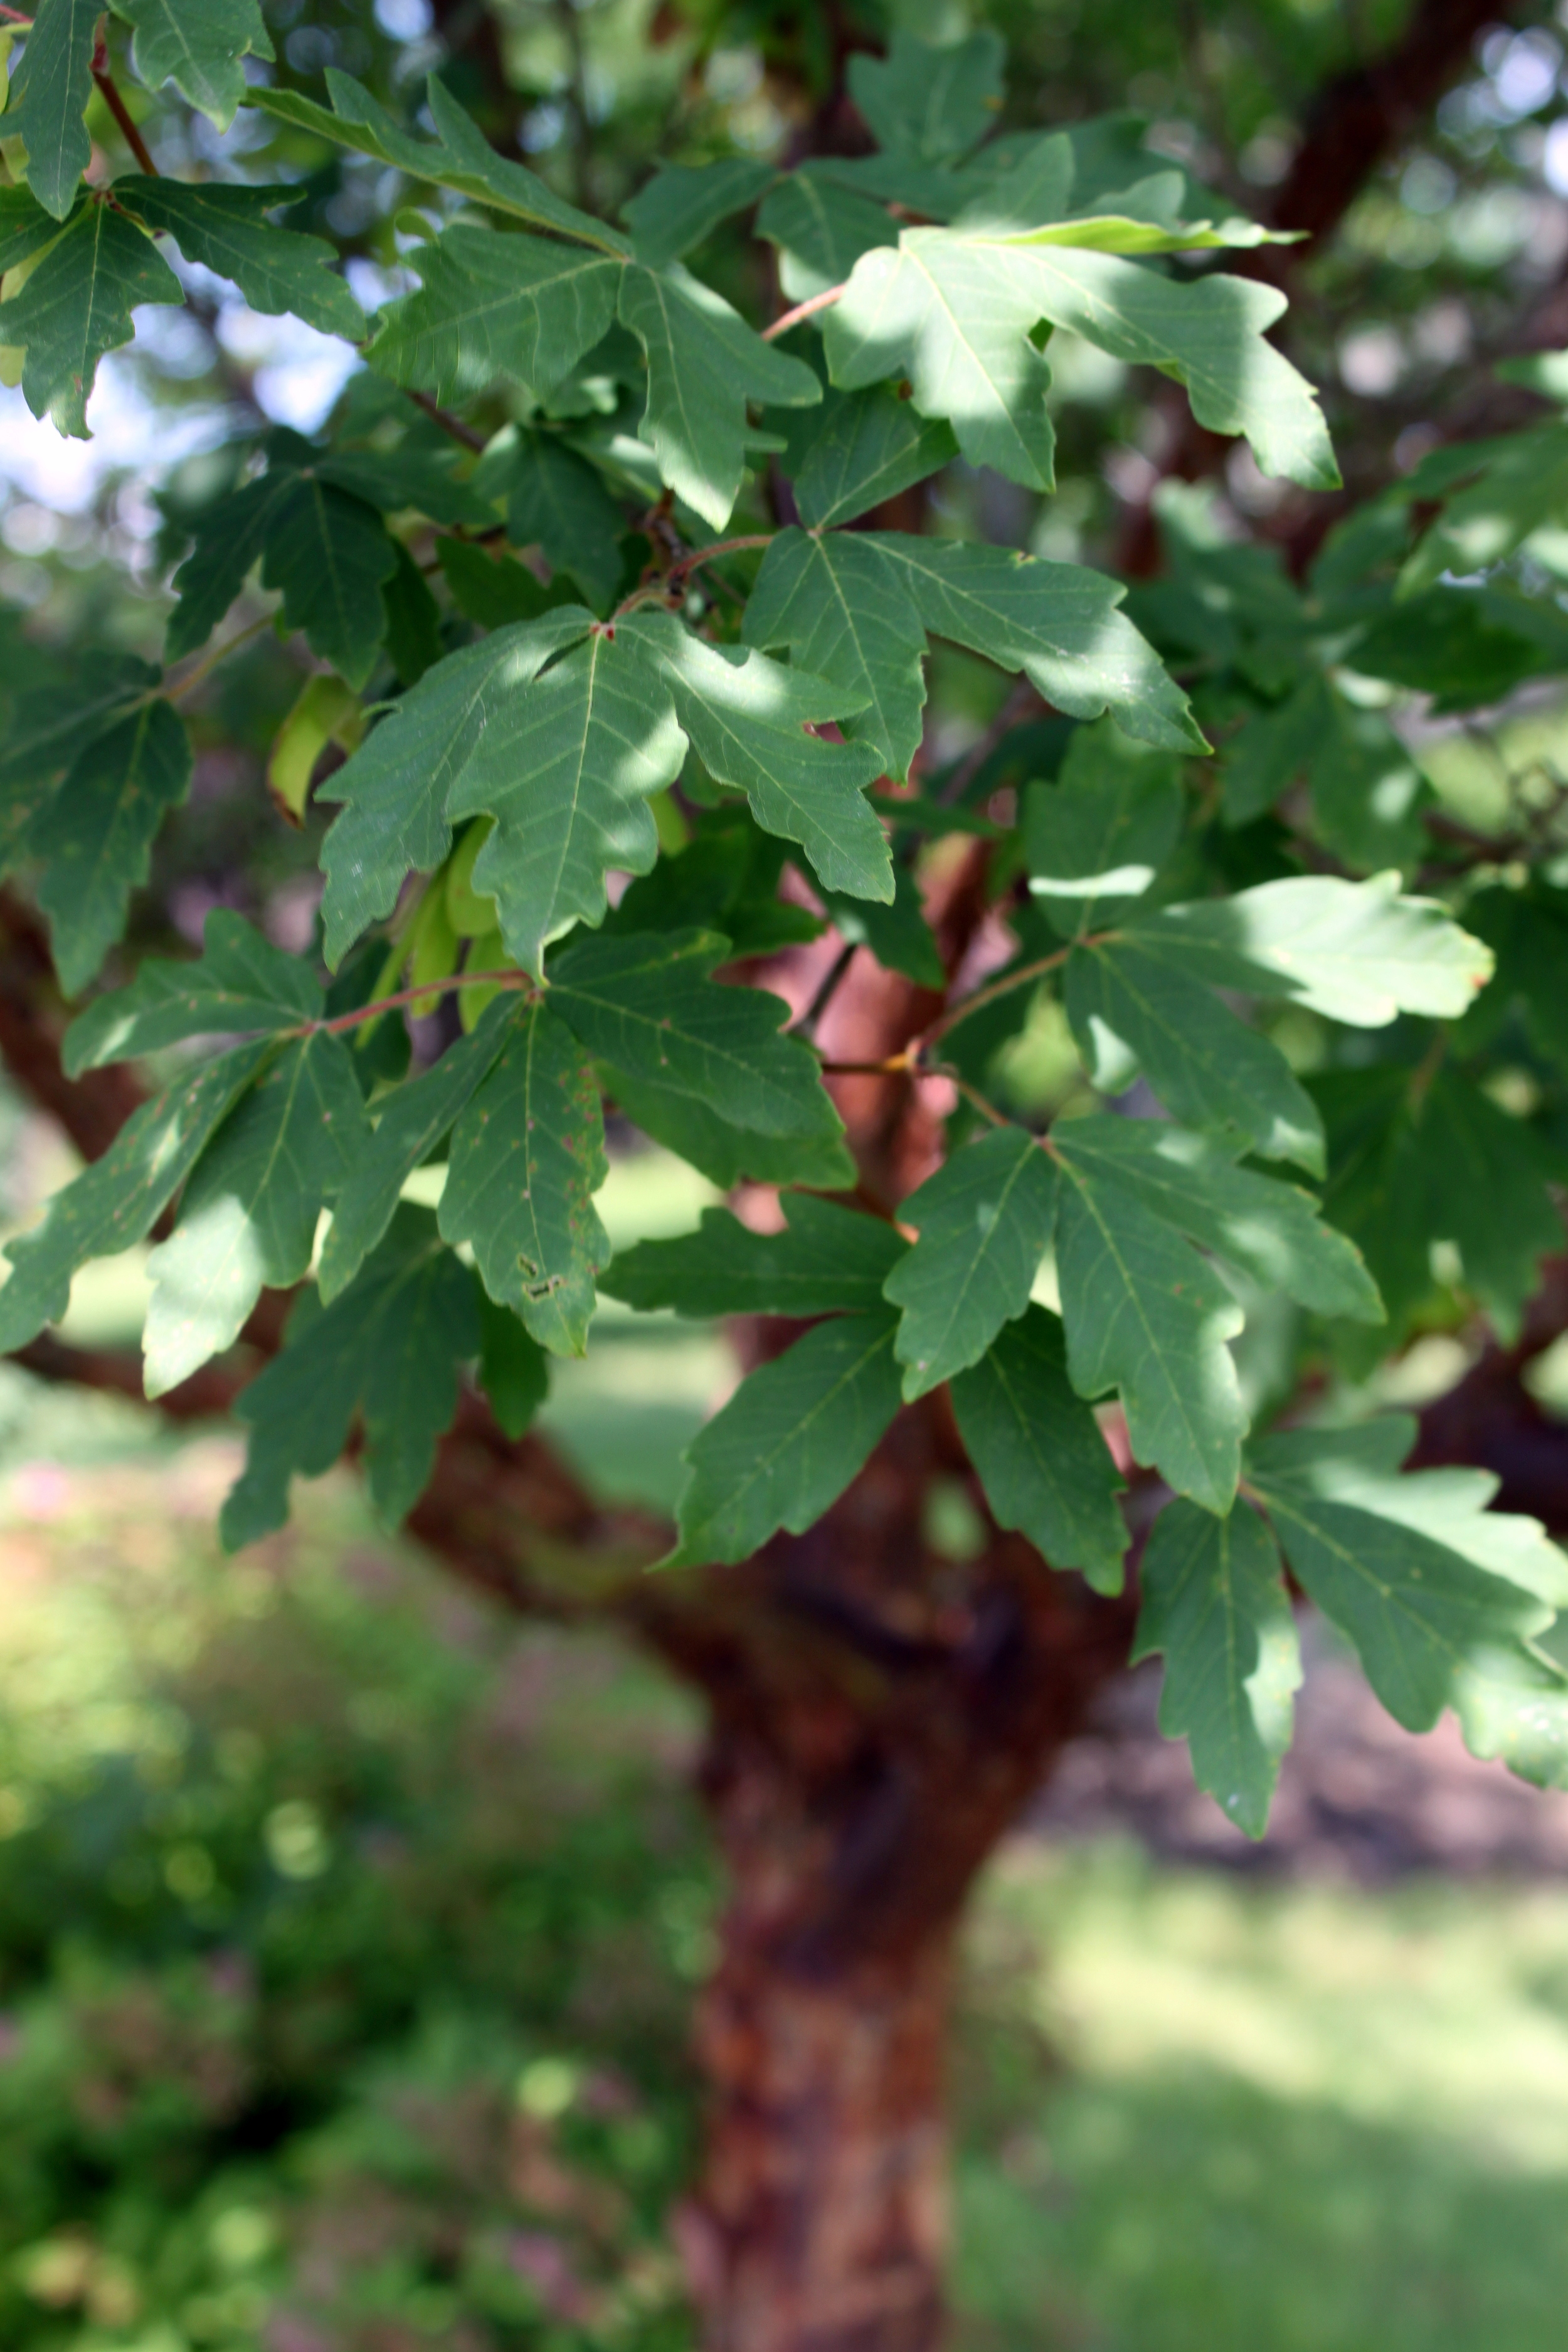 The delicate leaves which resemble the Japanese maple.